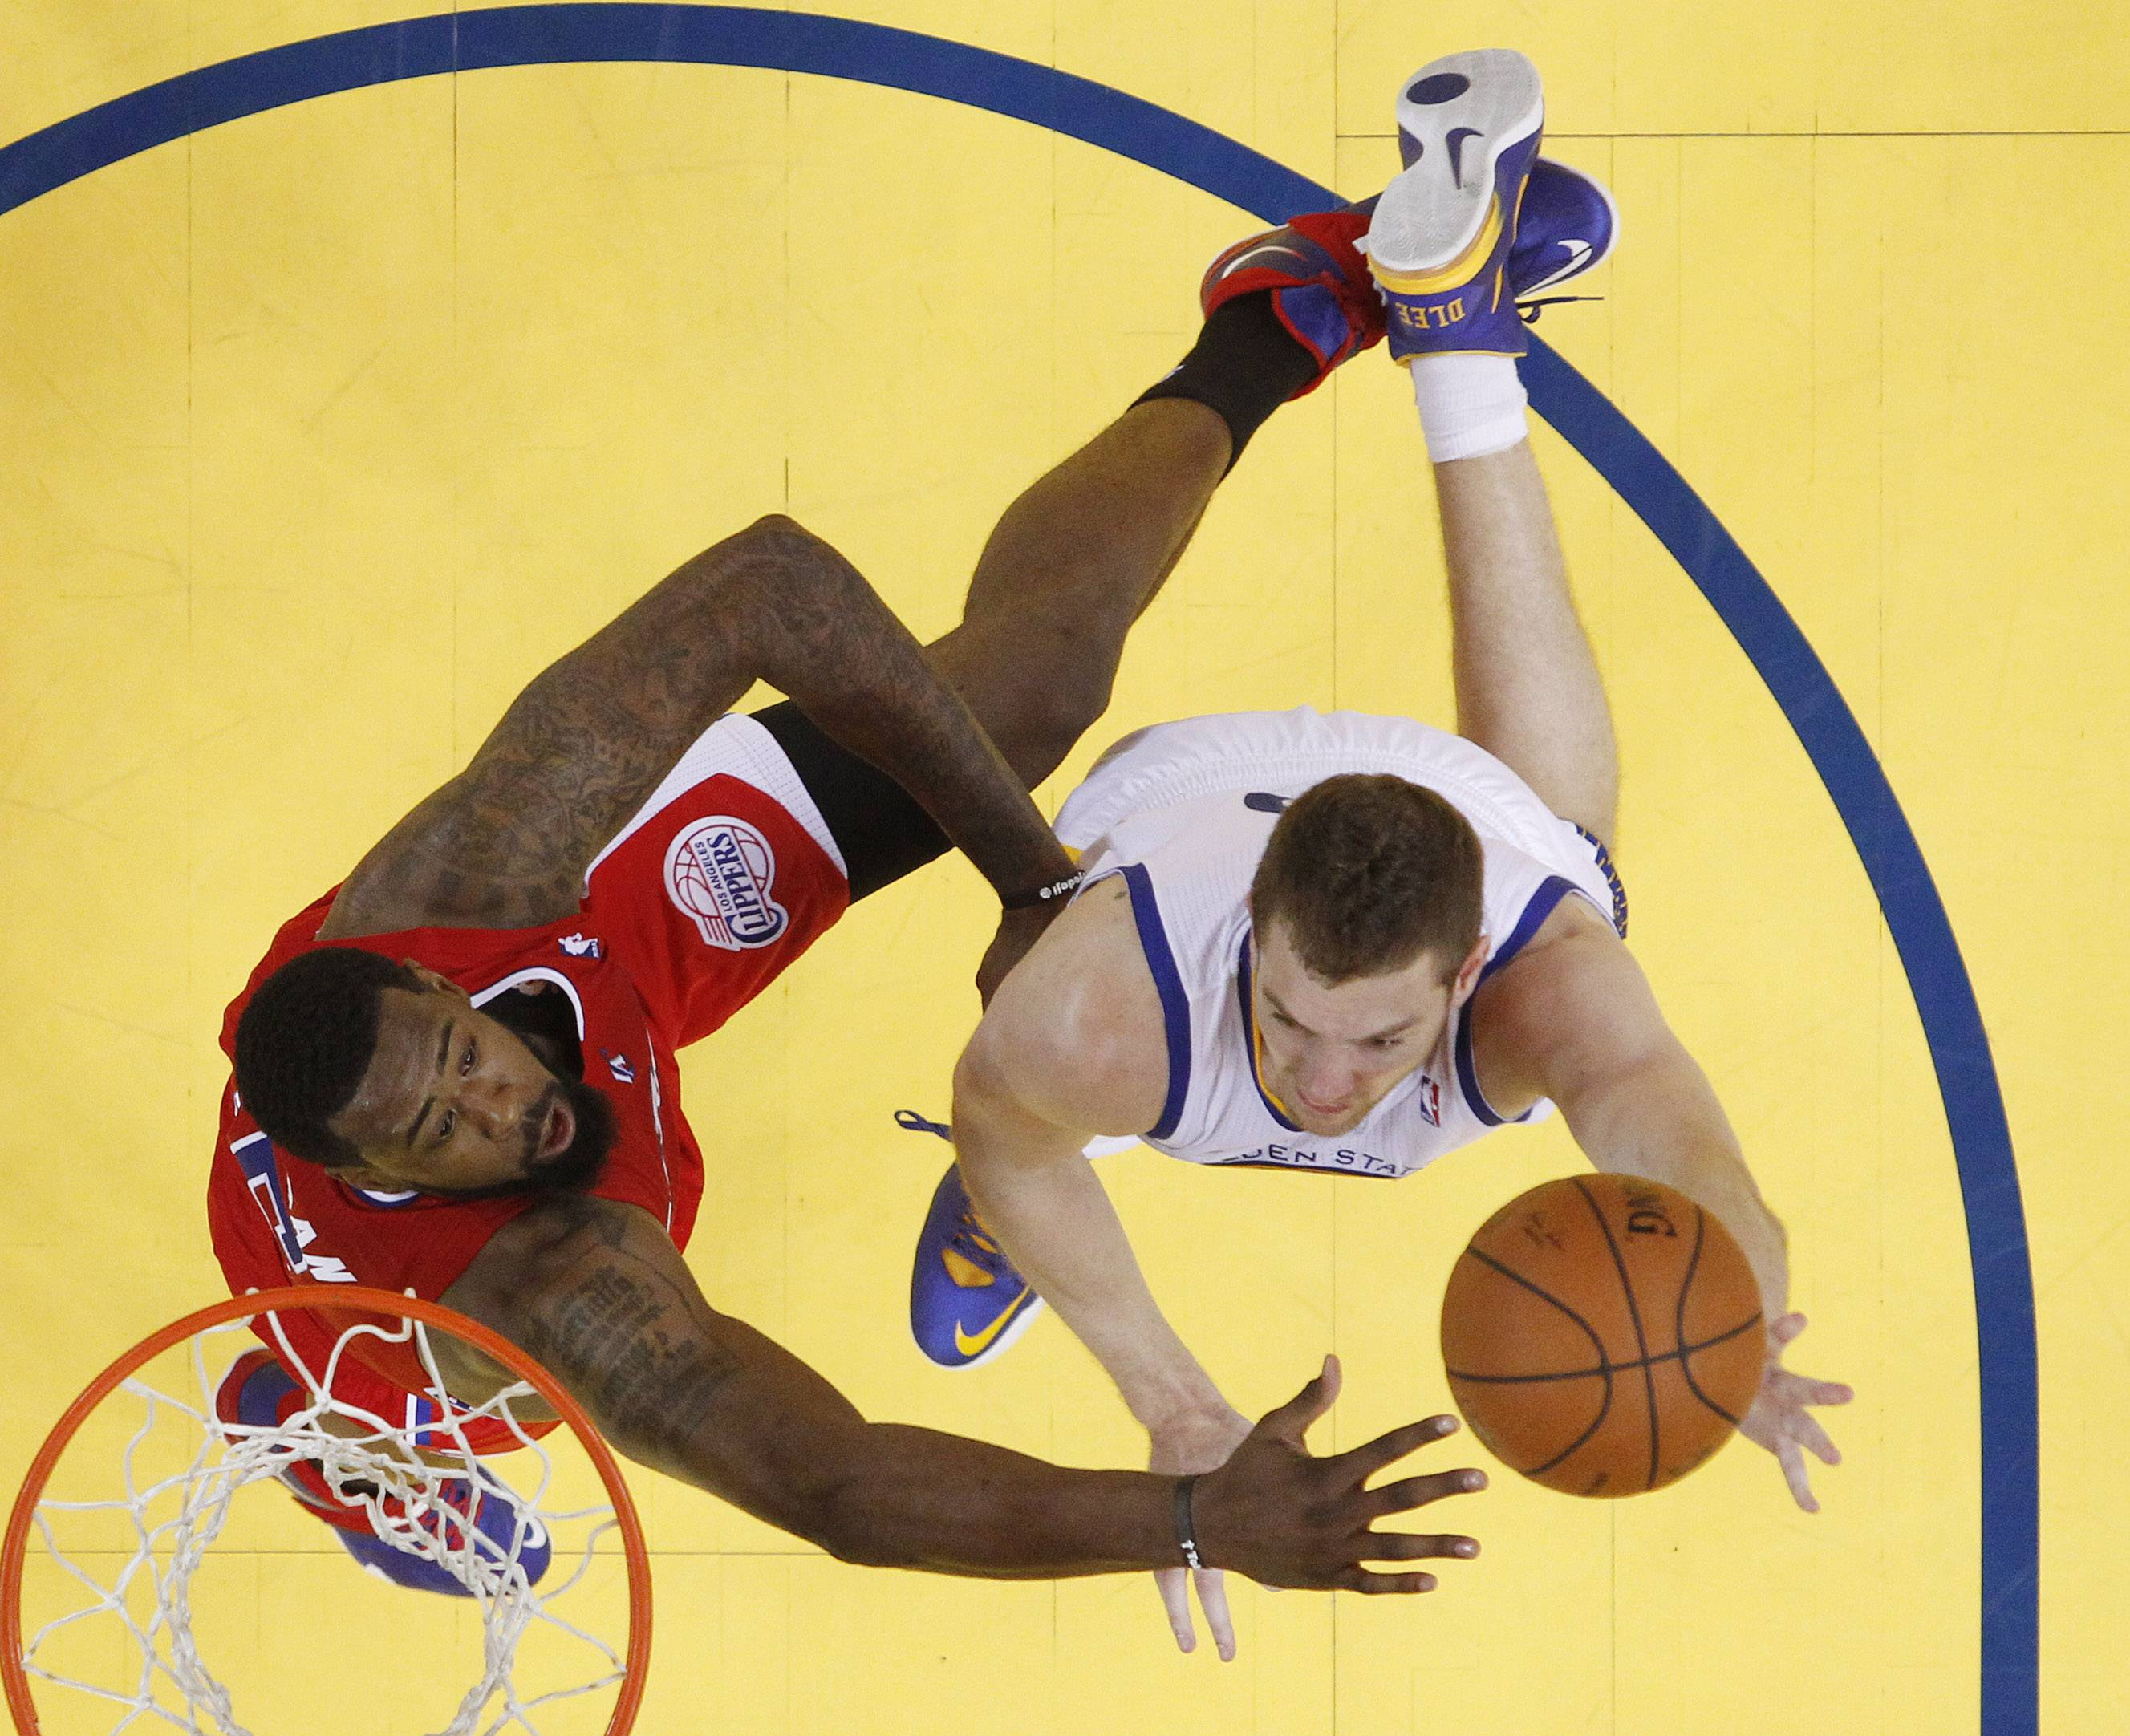 Golden State Warriors' David Lee, right, shoots next to Los Angeles Clippers' DeAndre Jordan during the second half in Game 6 of an opening-round NBA basketball playoff series on Thursday, May 1, 2014, in Oakland, Calif. Golden State won 100-99. (AP Photo/Marcio Jose Sanchez)